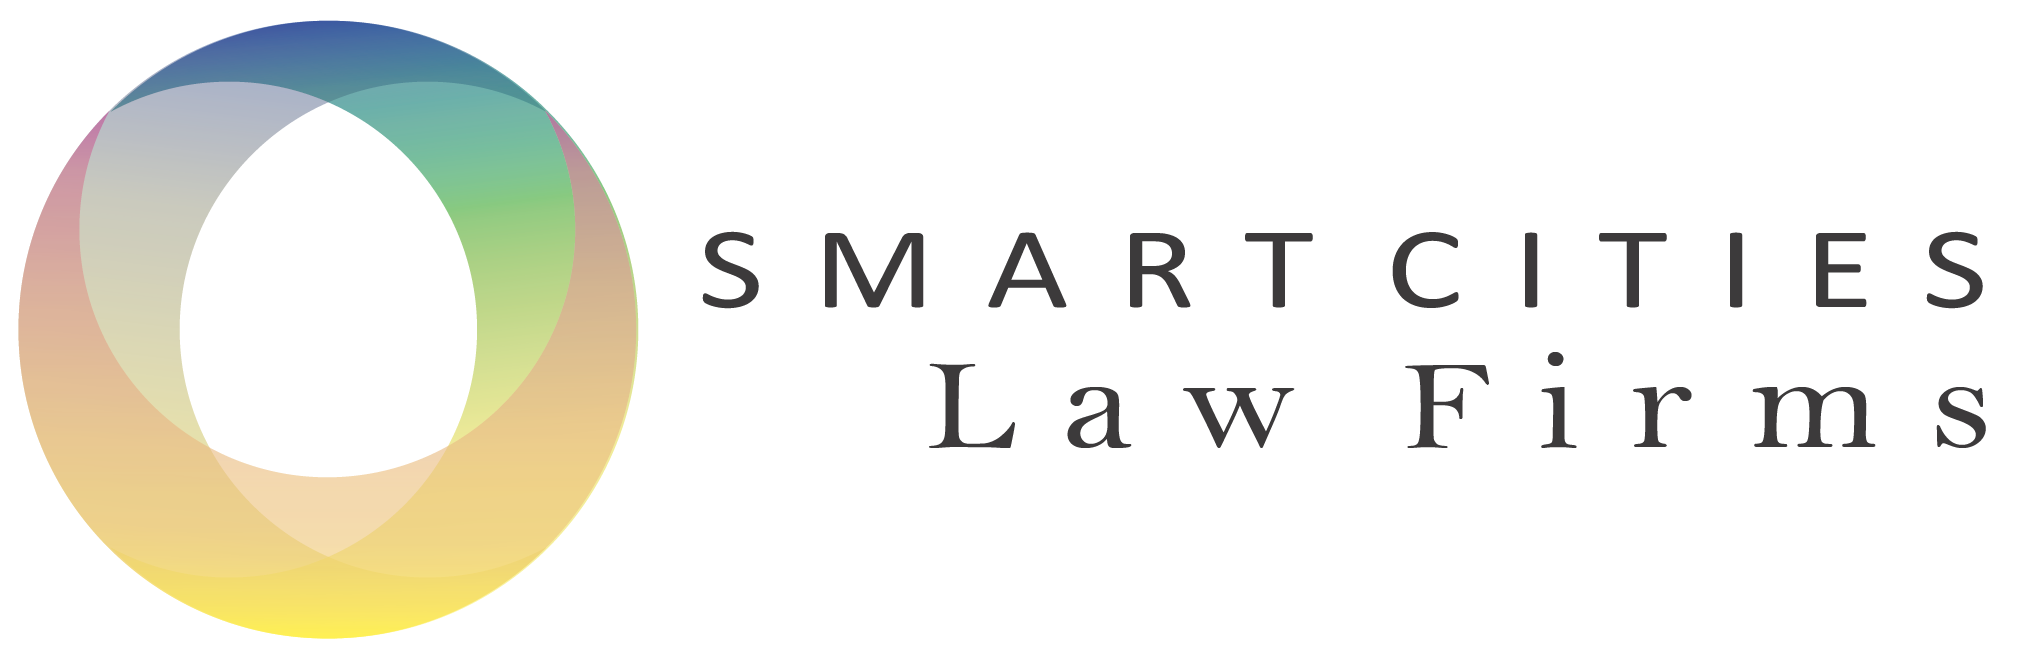 Smart City Law Firms